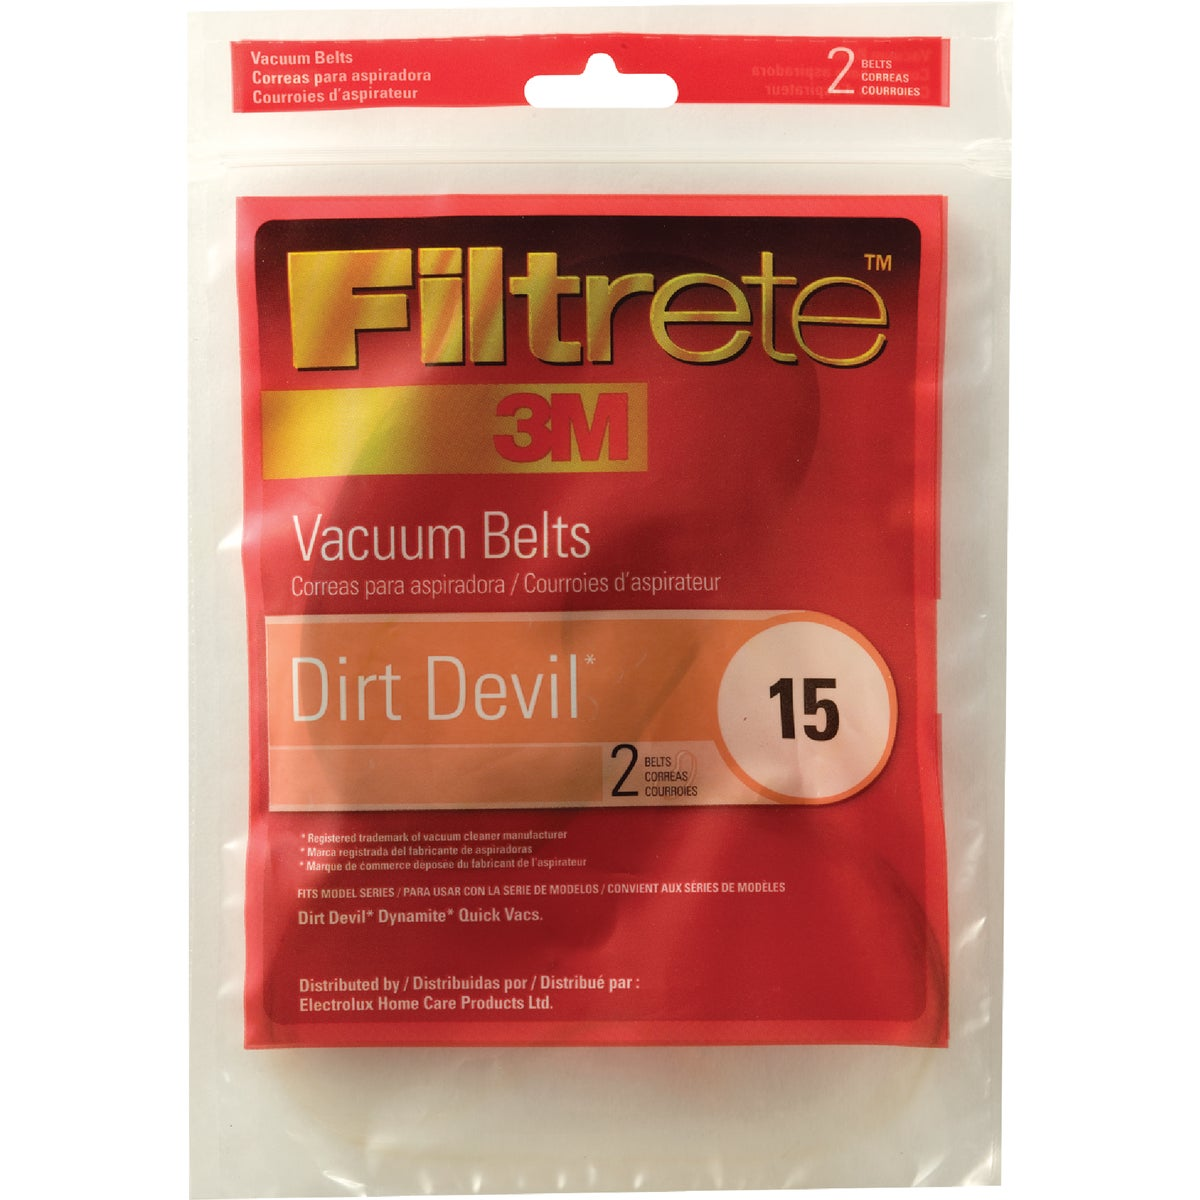 DIRT DEVIL 15 VAC BELT - 65015-12 by Electrolux Home Care